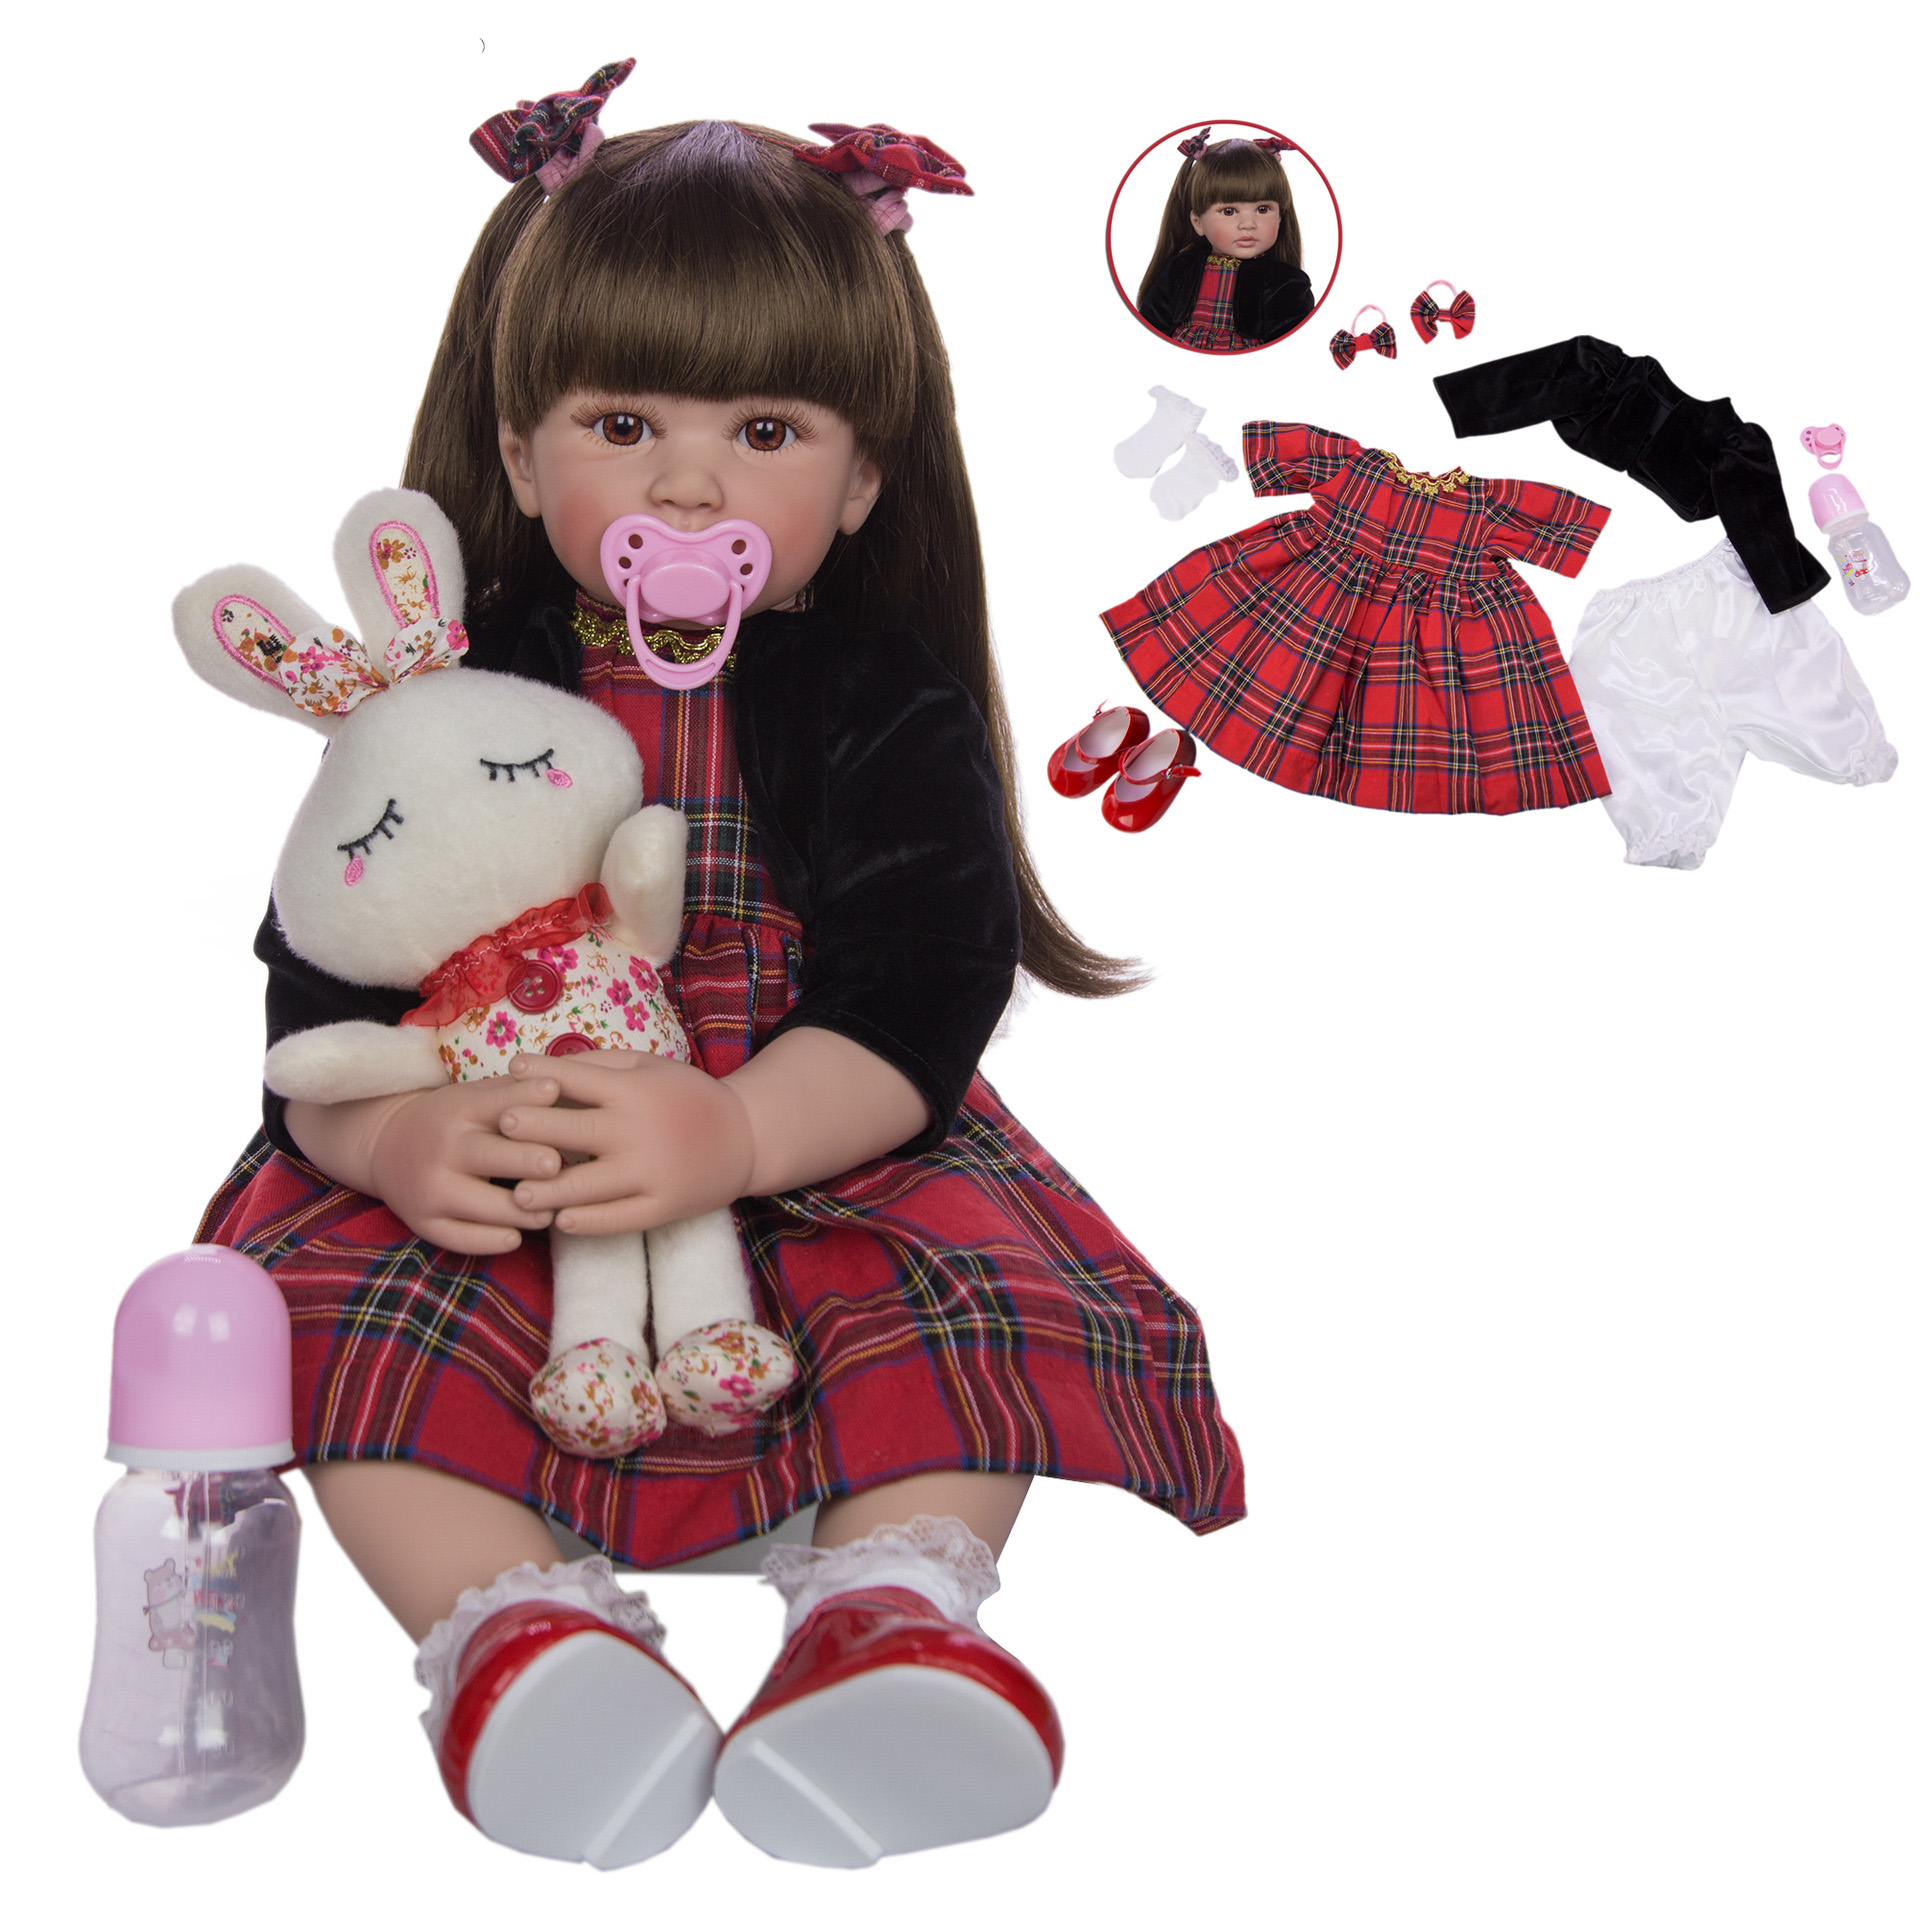 24 Inch <font><b>Reborn</b></font> <font><b>Dolls</b></font> <font><b>60</b></font> <font><b>cm</b></font> Silicone Soft Realistic Princess Girl Baby <font><b>Doll</b></font> Adorable Lifelike Ethnic <font><b>Doll</b></font> Kid Birthday Xmas Gifts image